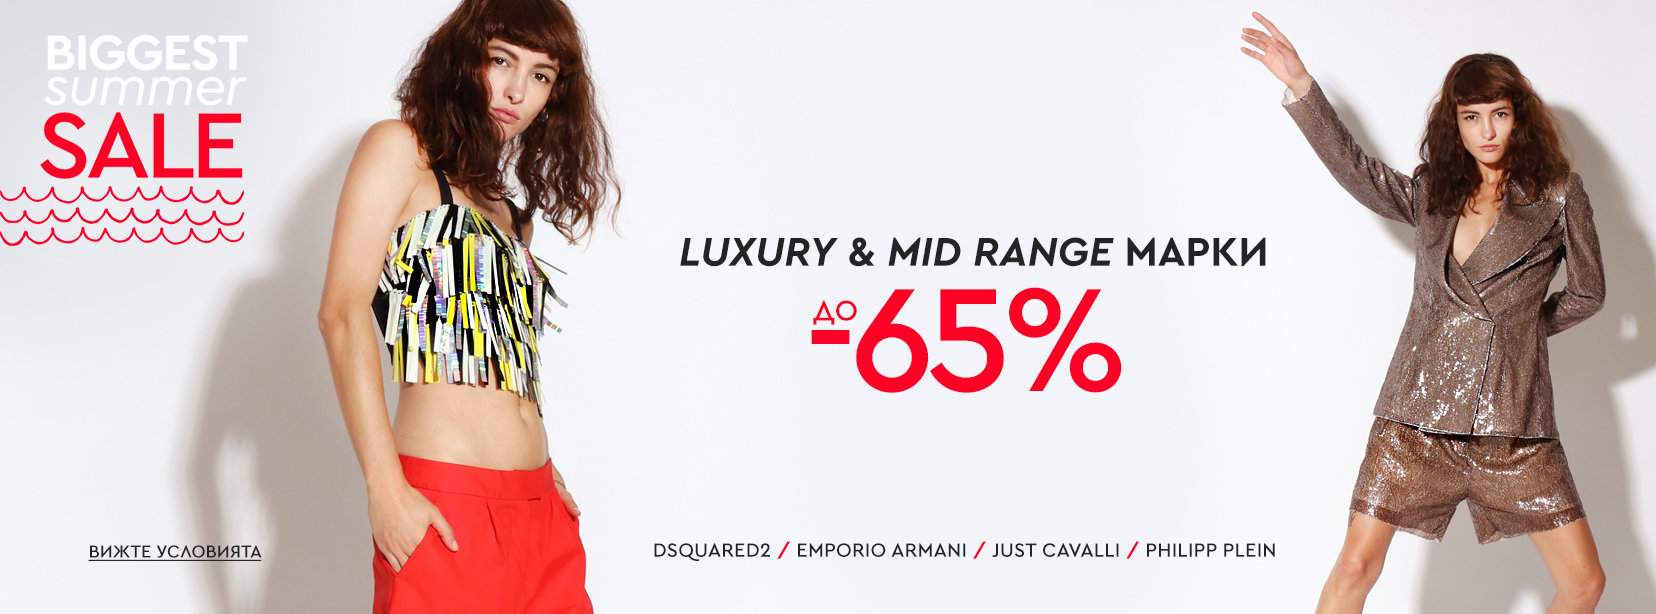 Luxury & Mid Range марки с до -65%